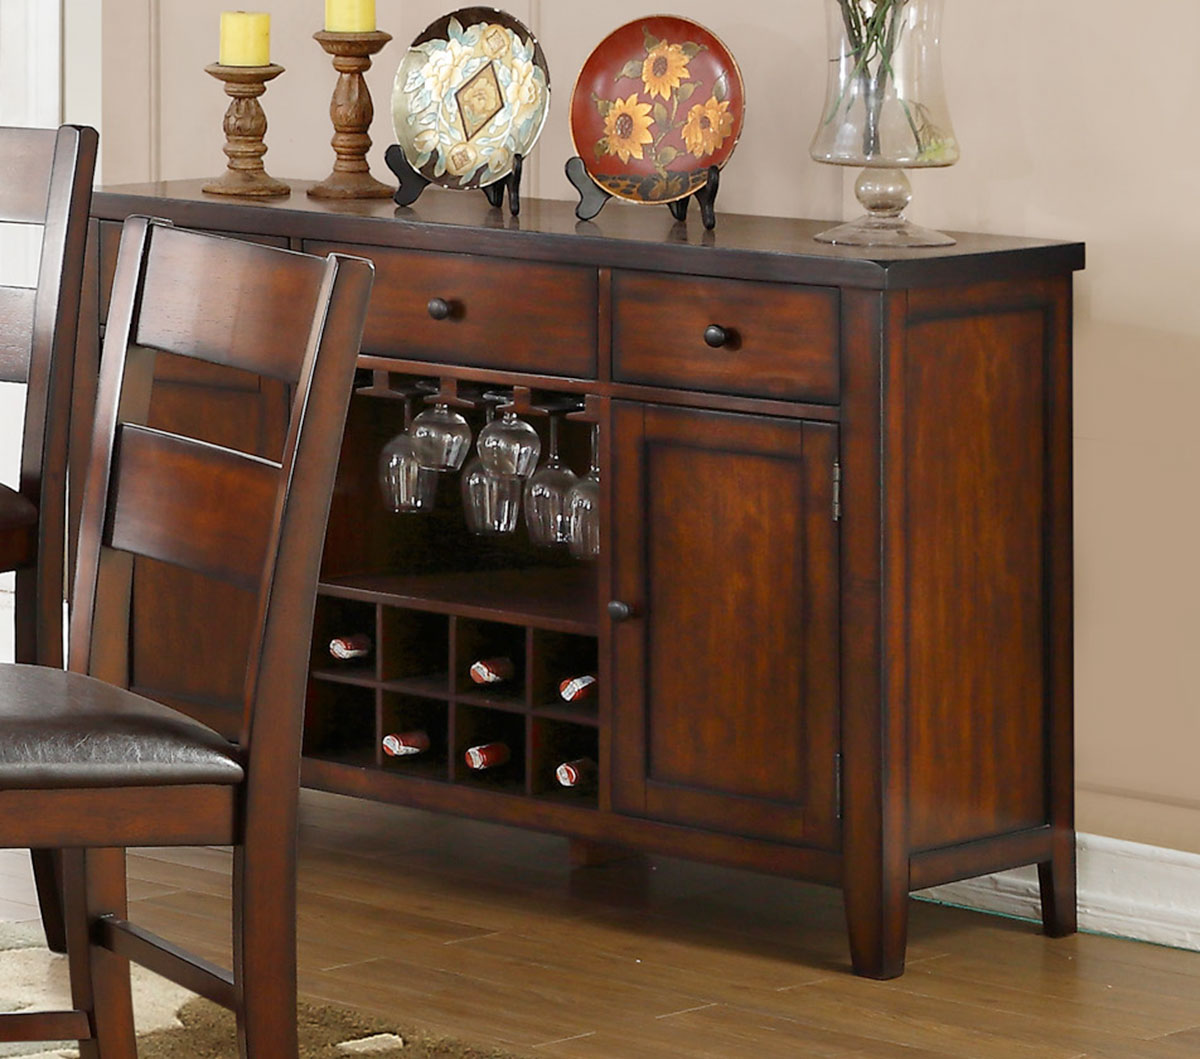 Homelegance Mantello Server - Cherry